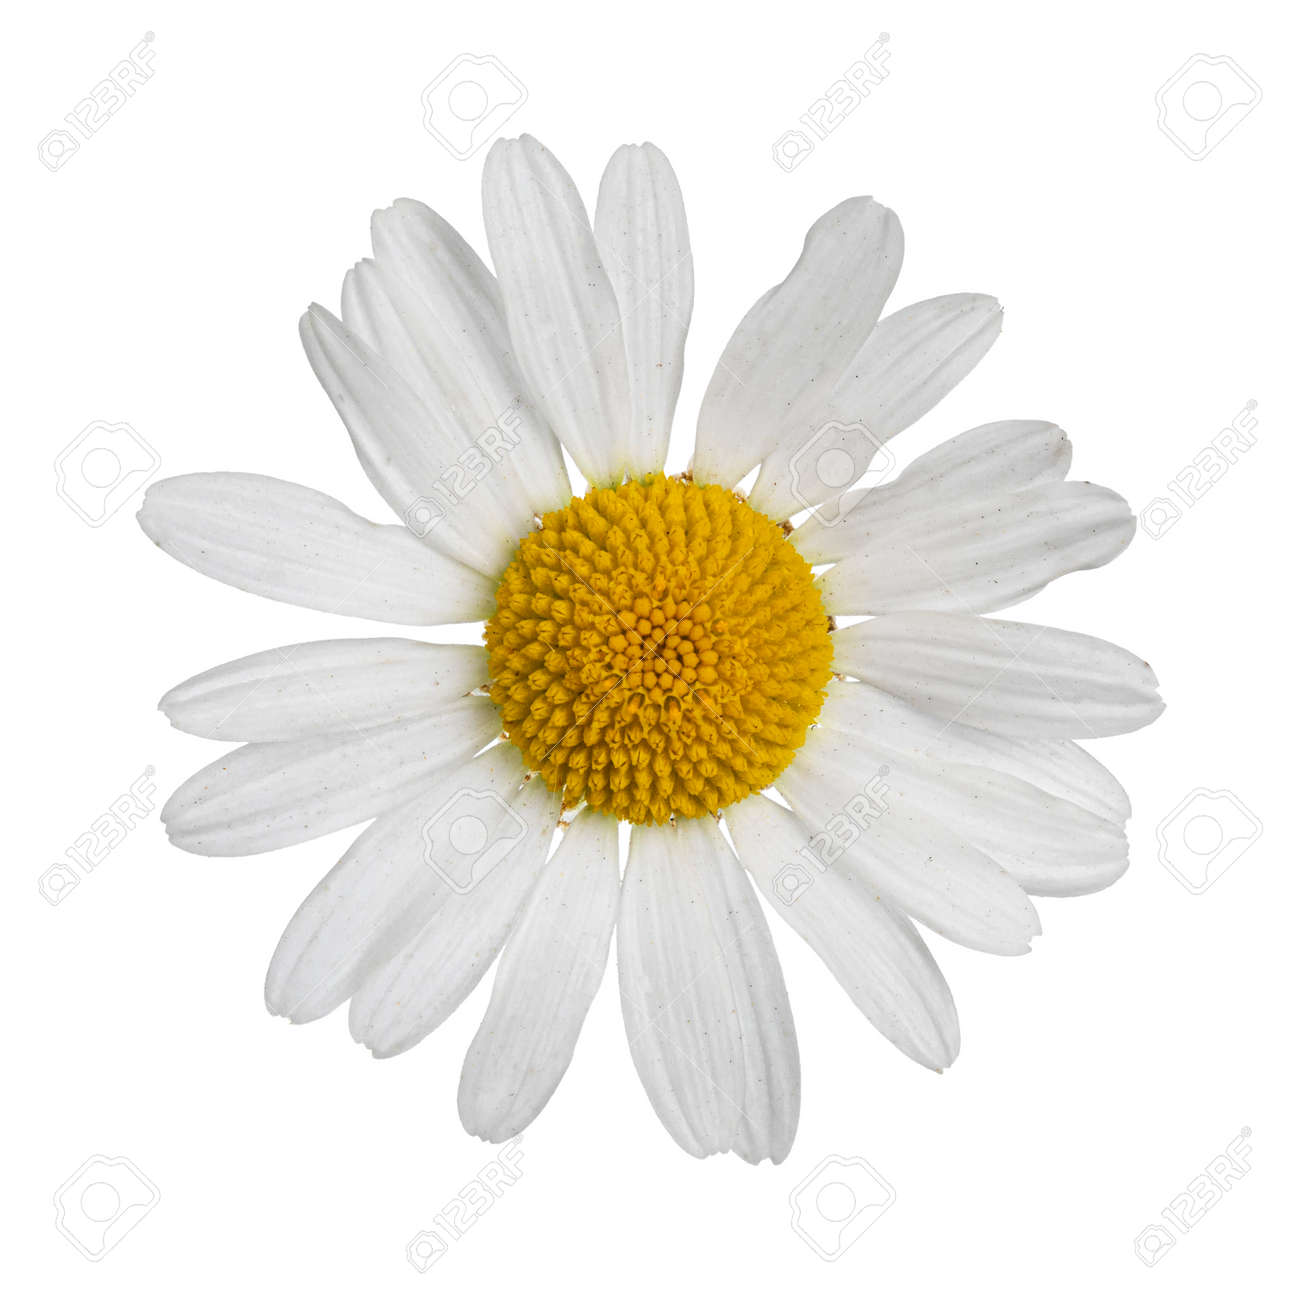 Top view of Oxeye Daisy aka Leucanthemum vulgare. Single flower on stem. Isolated on a white background. - 173357214